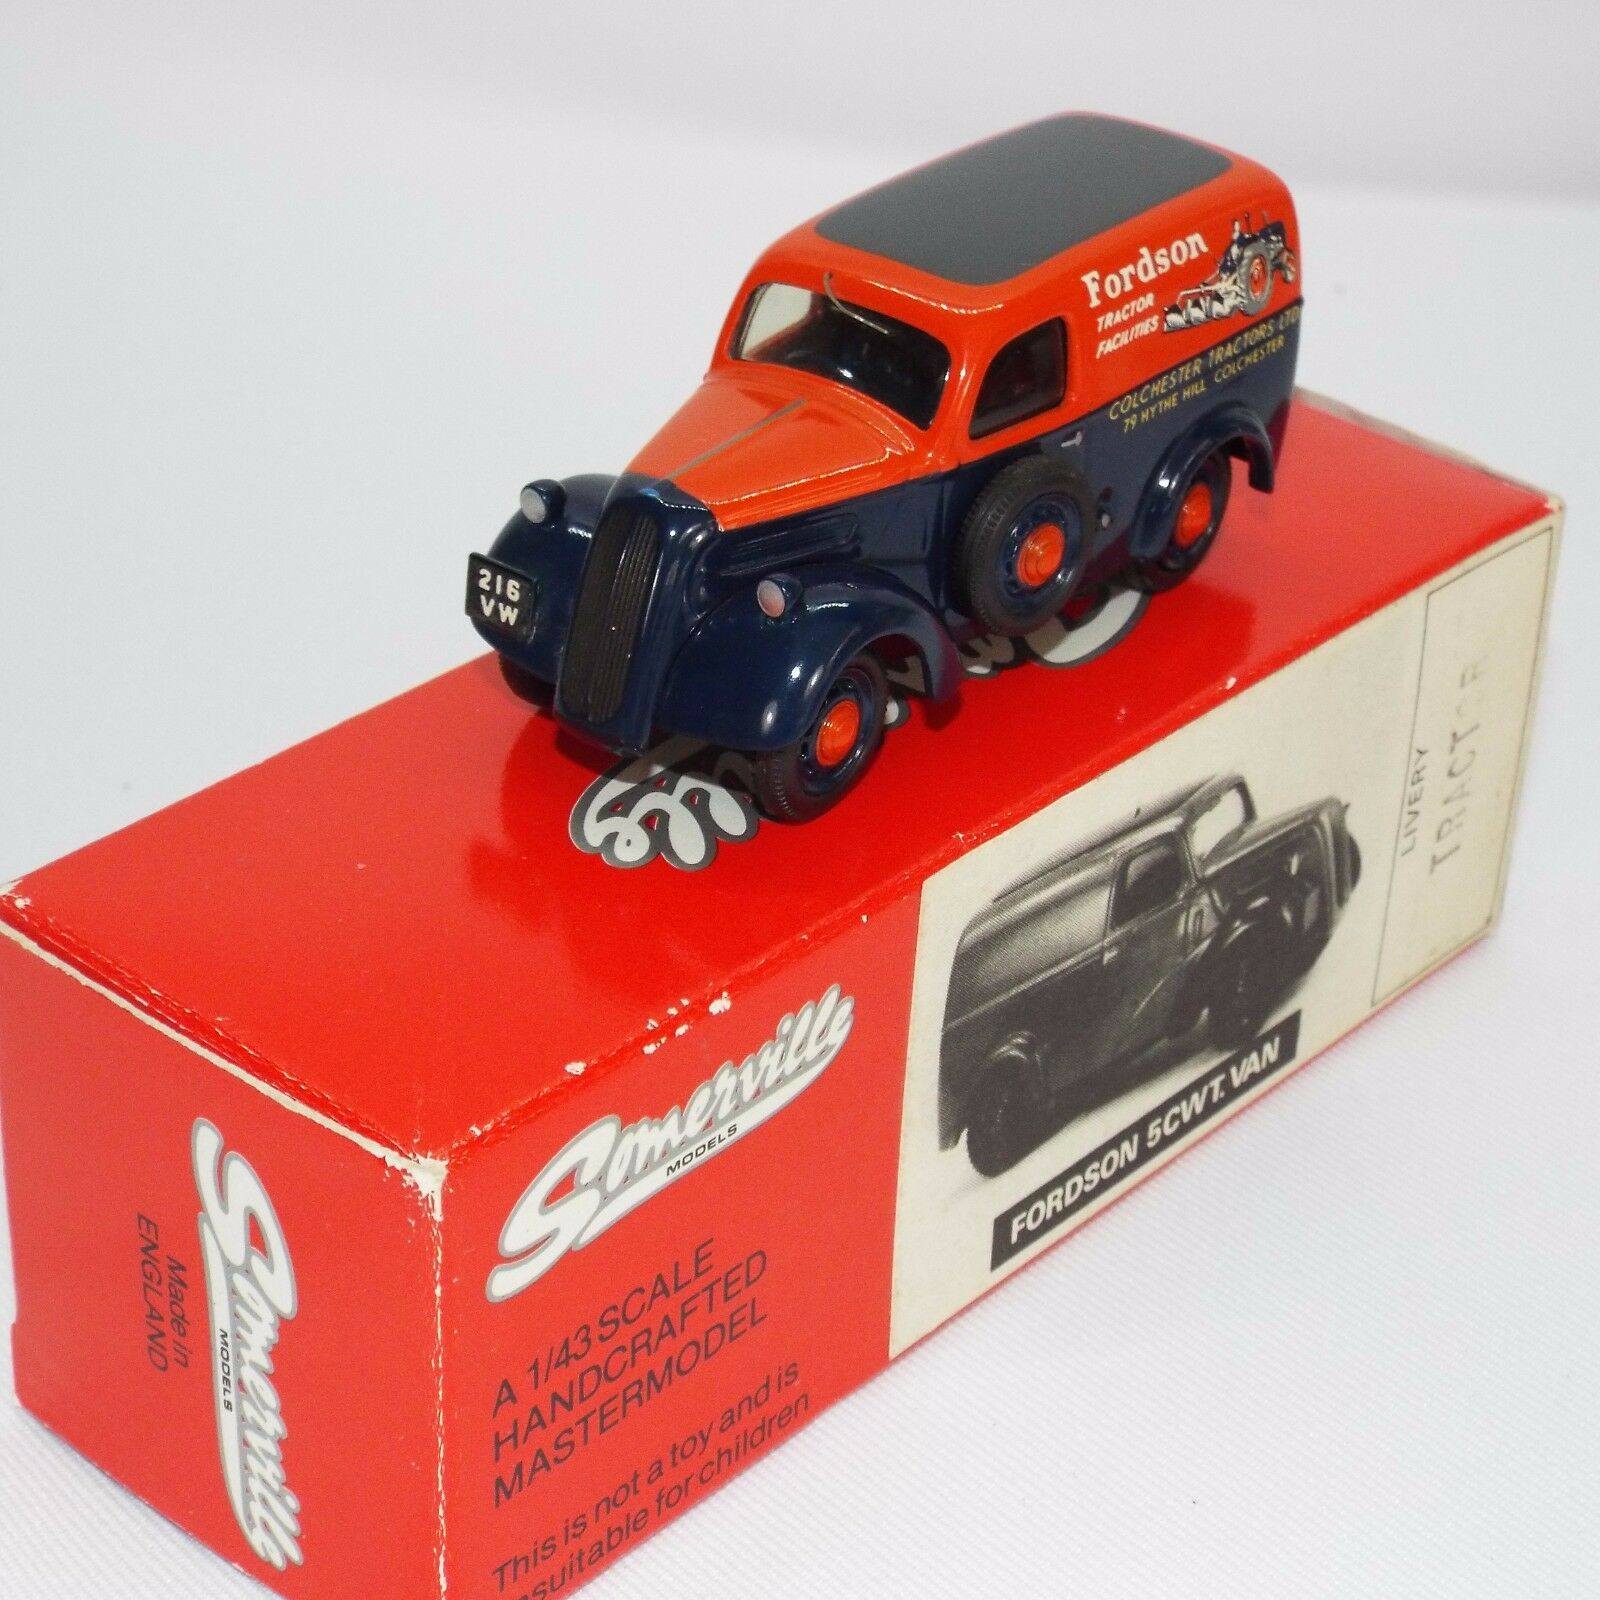 Somerville white metal 1.43 scale mode VNMBl of the Fordson 5 cwt van